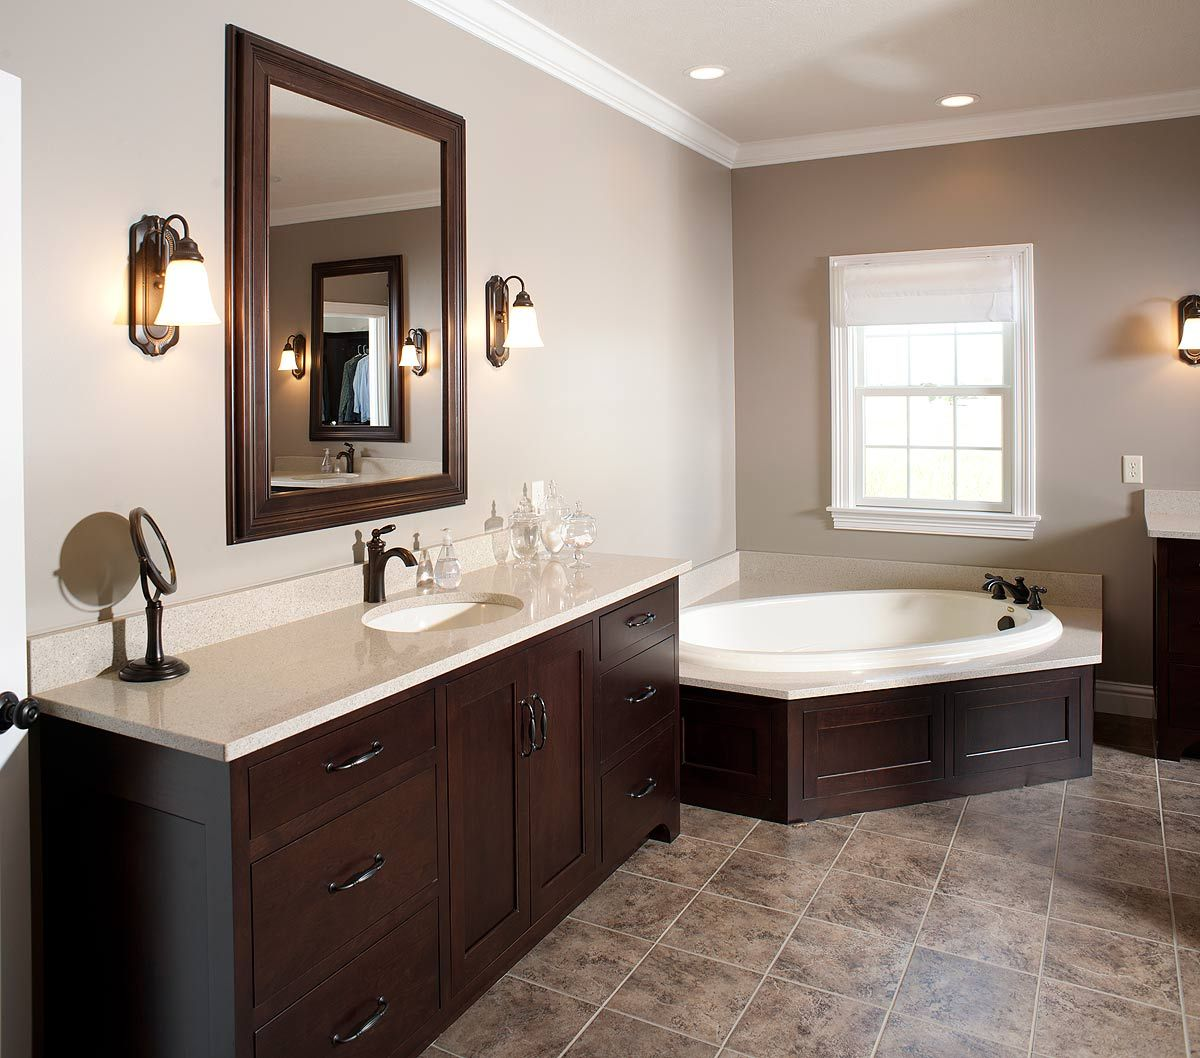 Mullet Cabinet Gallery Bathroom Color Schemes Cherry Wood Cabinets Dark Wood Bathroom